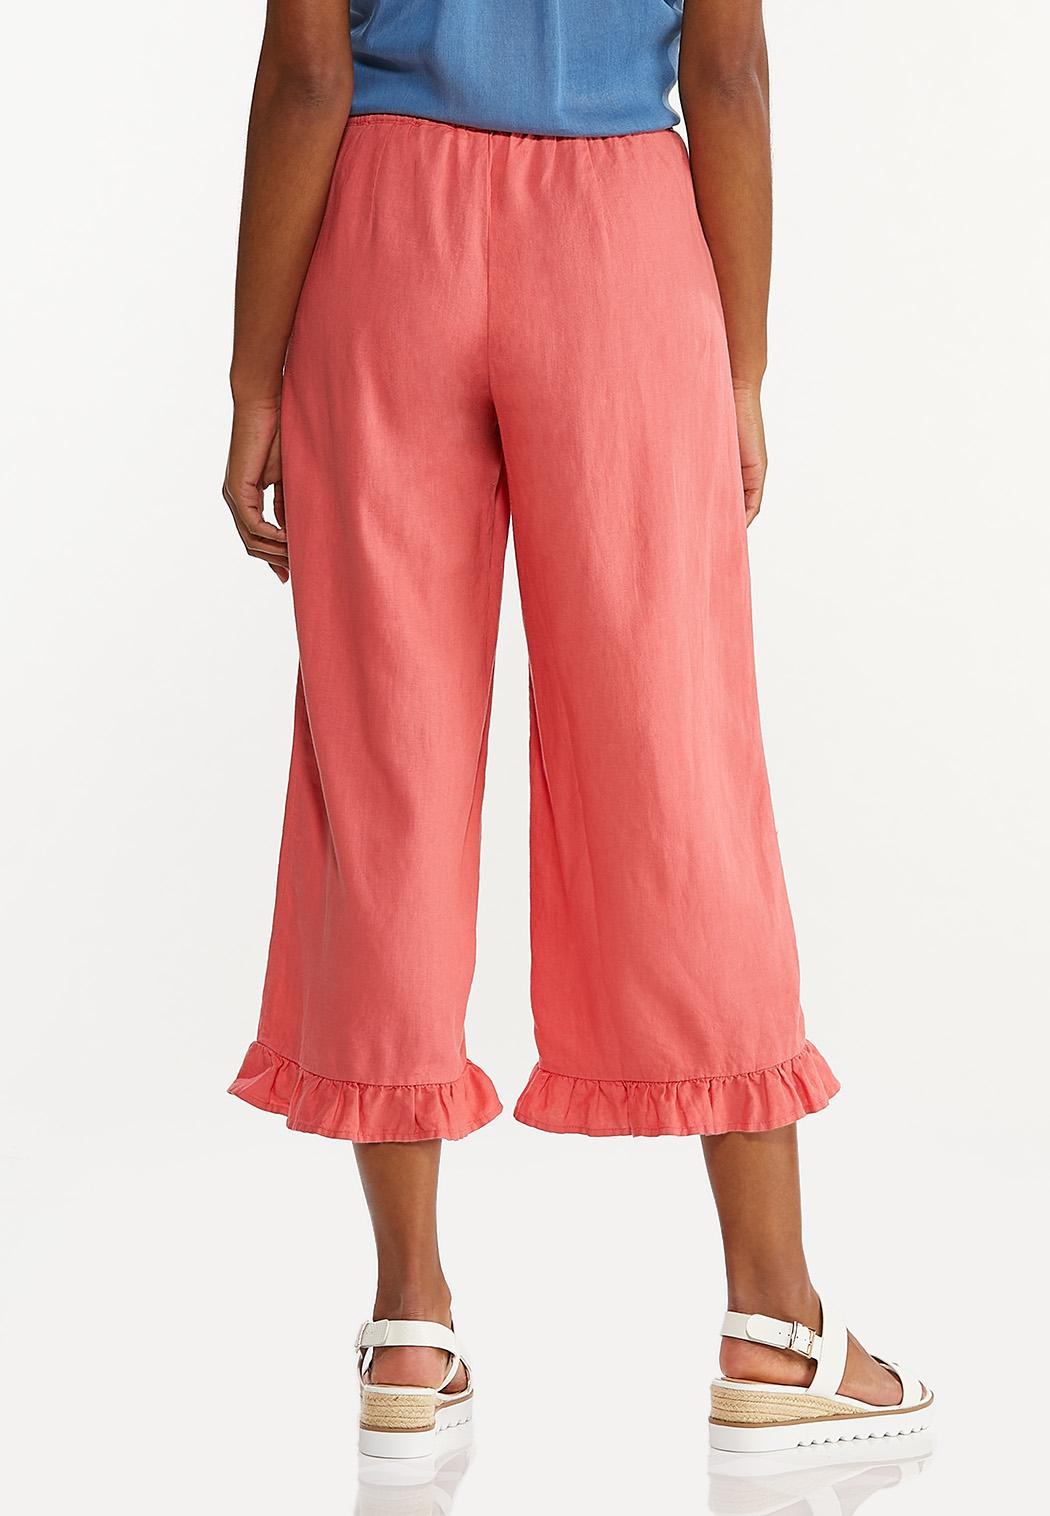 Cropped Ruffled Linen Pants (Item #44580388)